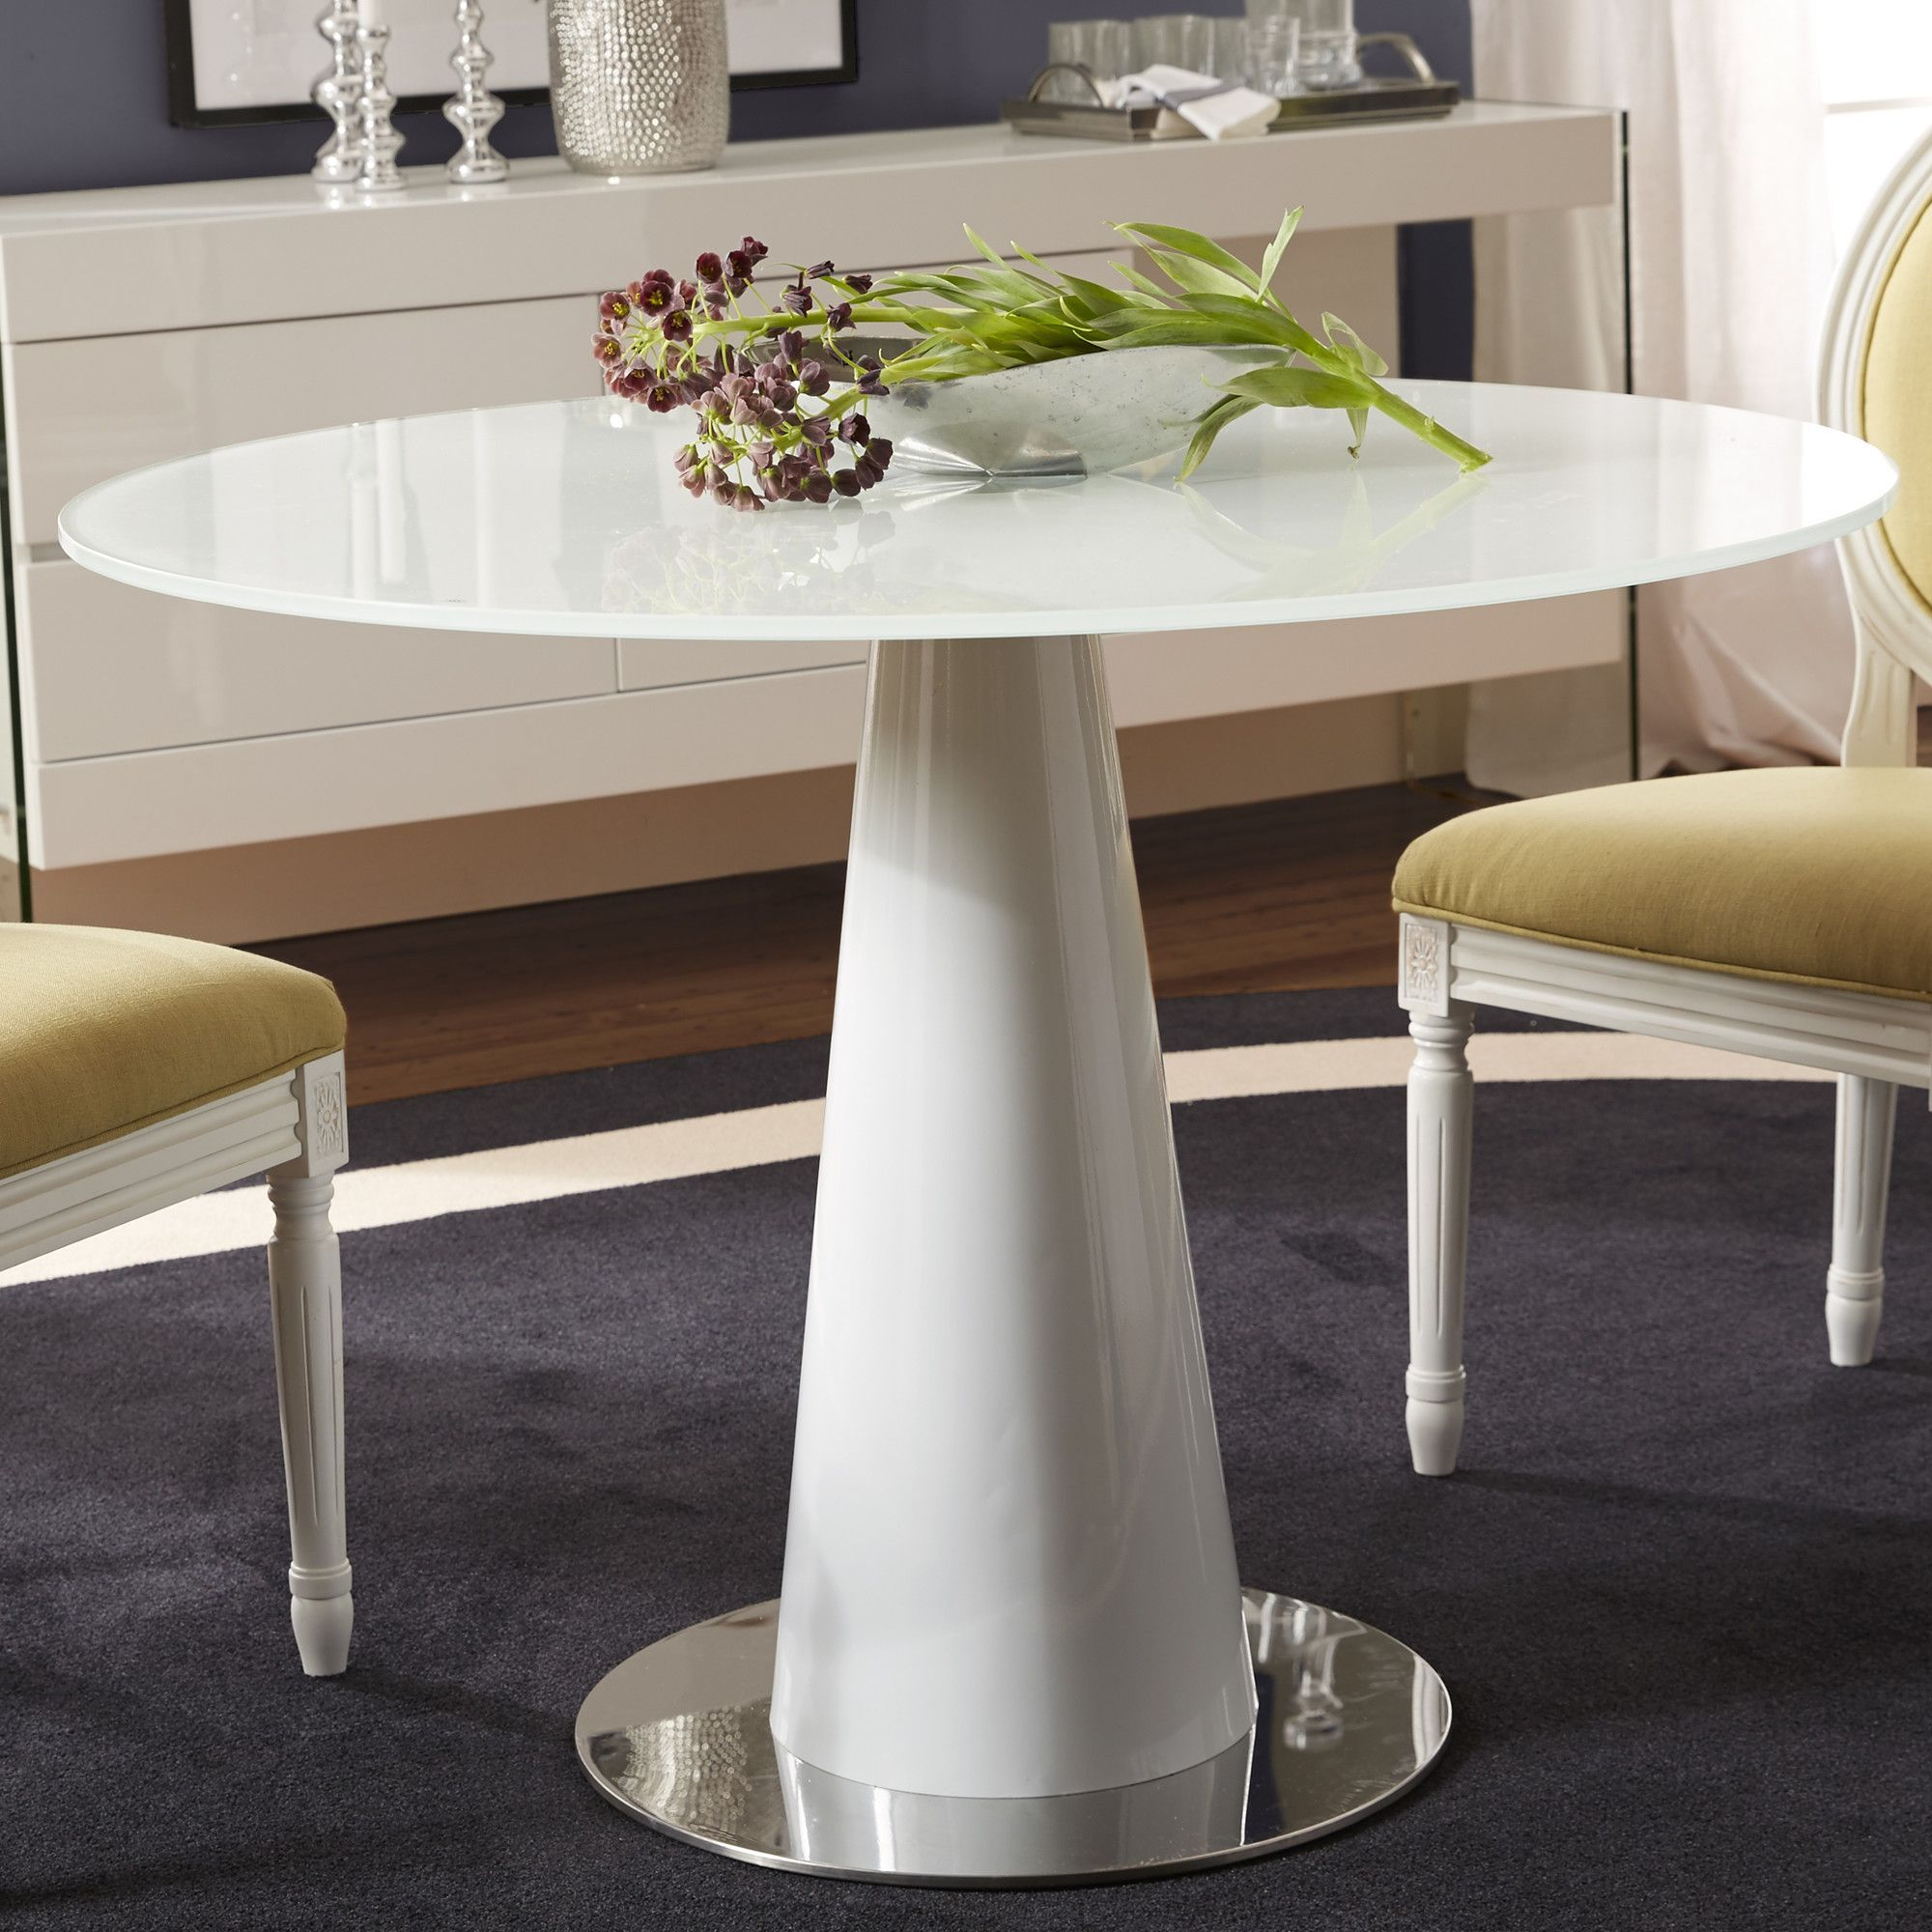 Captivating Anchor A Contemporary Dining Ensemble With This Minimalist Table, Featuring  A White Lacquer Finish And Pedestal Base.